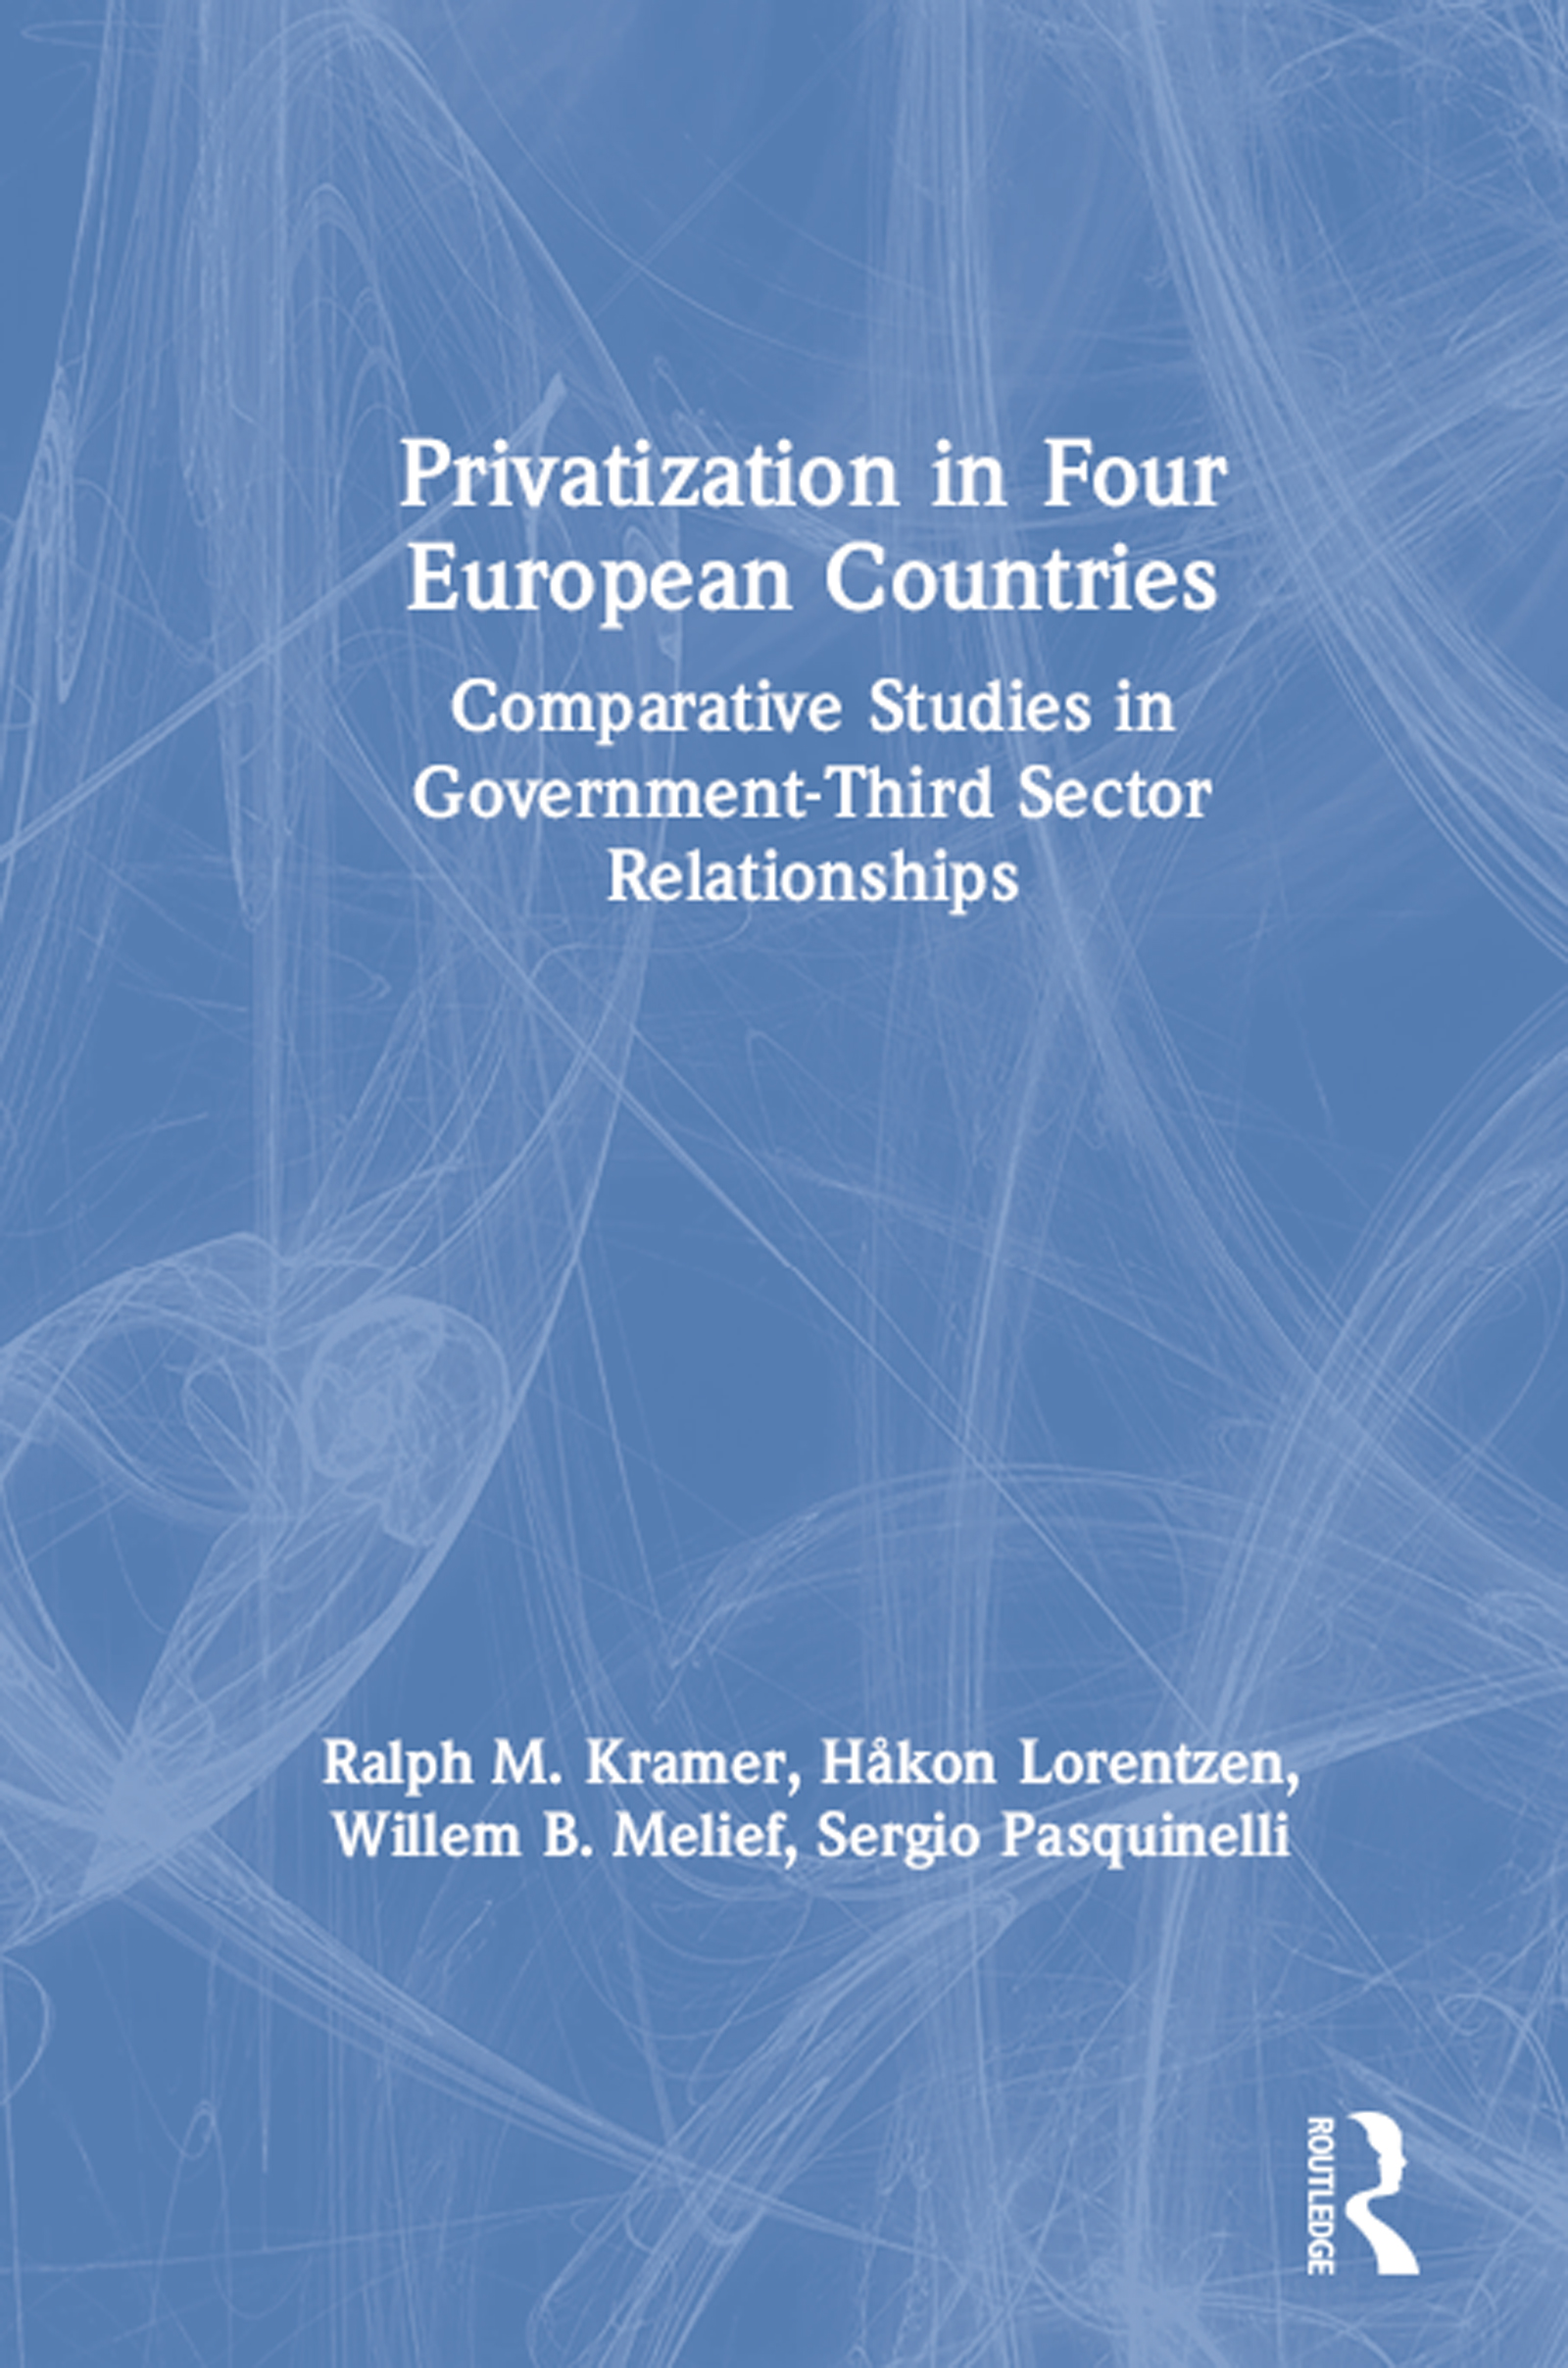 Privatization in Four European Countries: Comparative Studies in Government - Third Sector Relationships